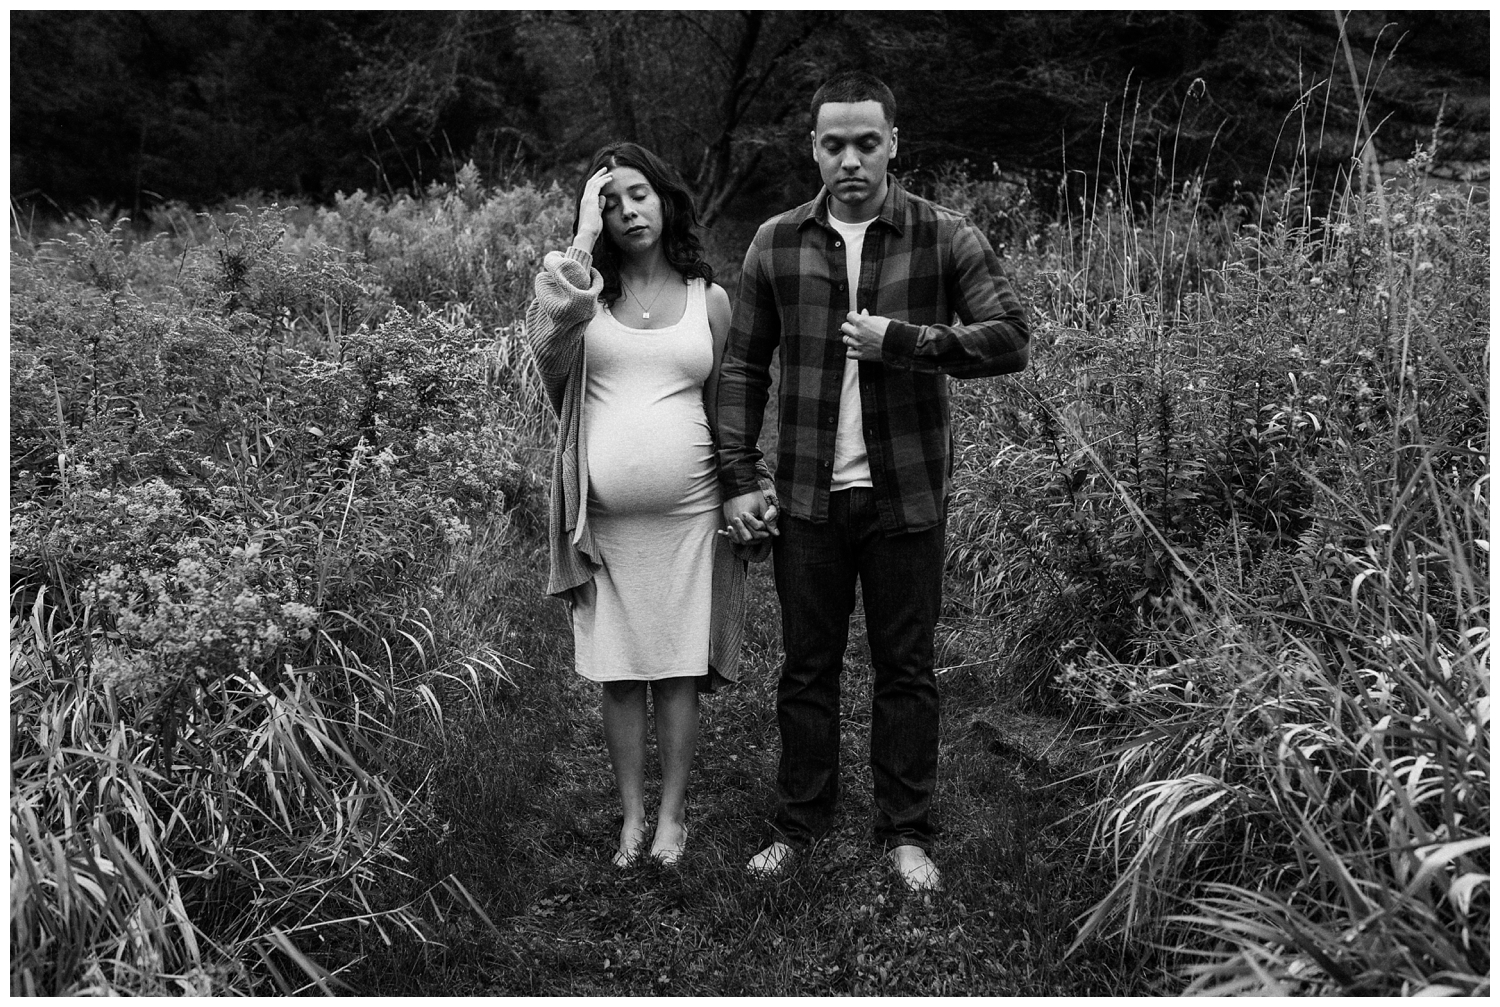 Karla and David Perez Maternity Photoshoot at Home with jenFAIRCHILD Photography in Hudson Valley New York_0027.jpg